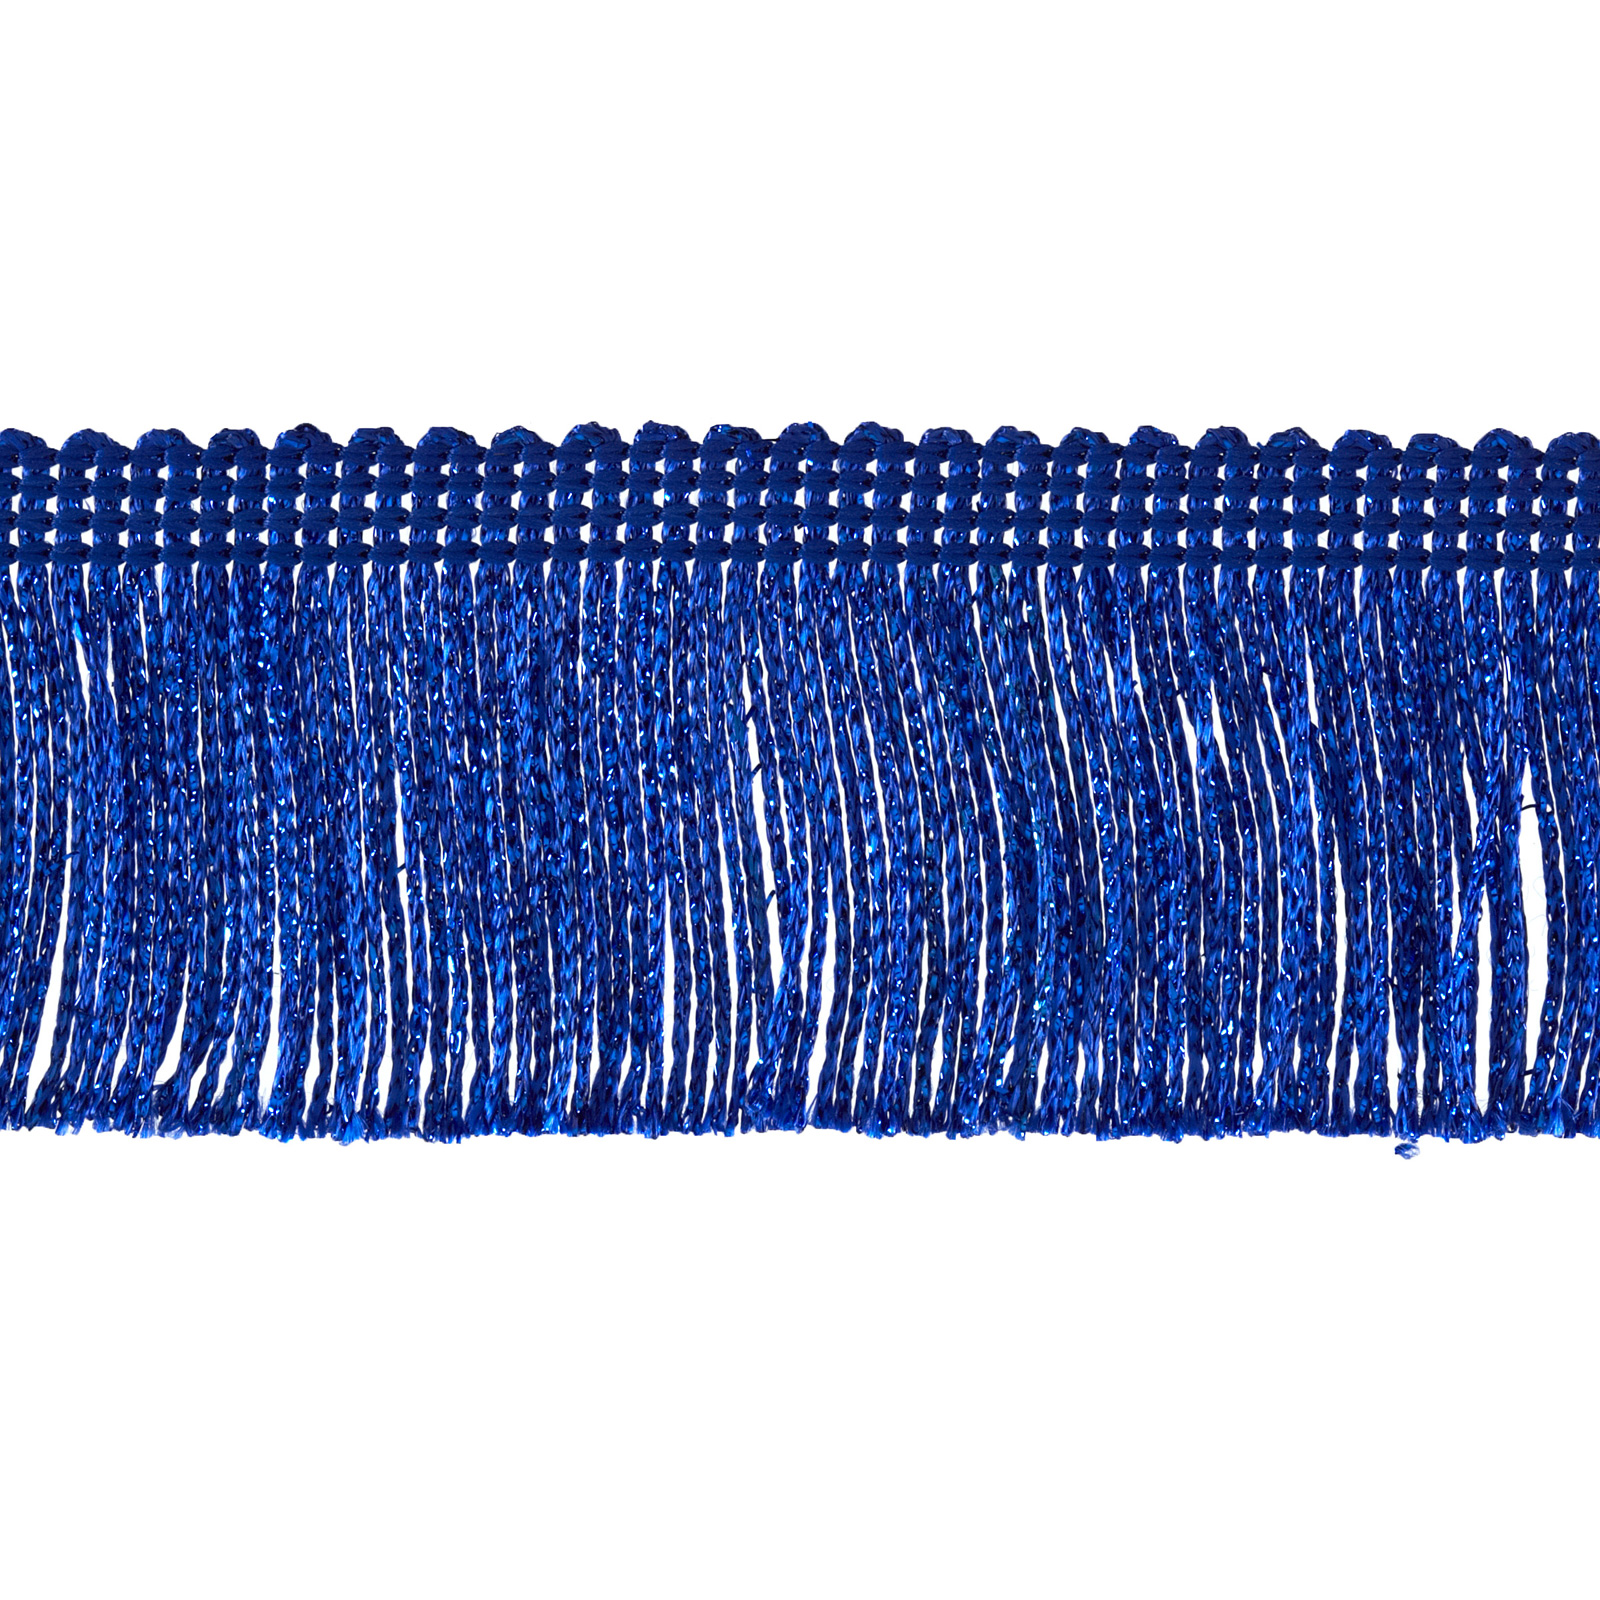 2'' Metallic Chainette Fringe Trim Royal Blue Fabric